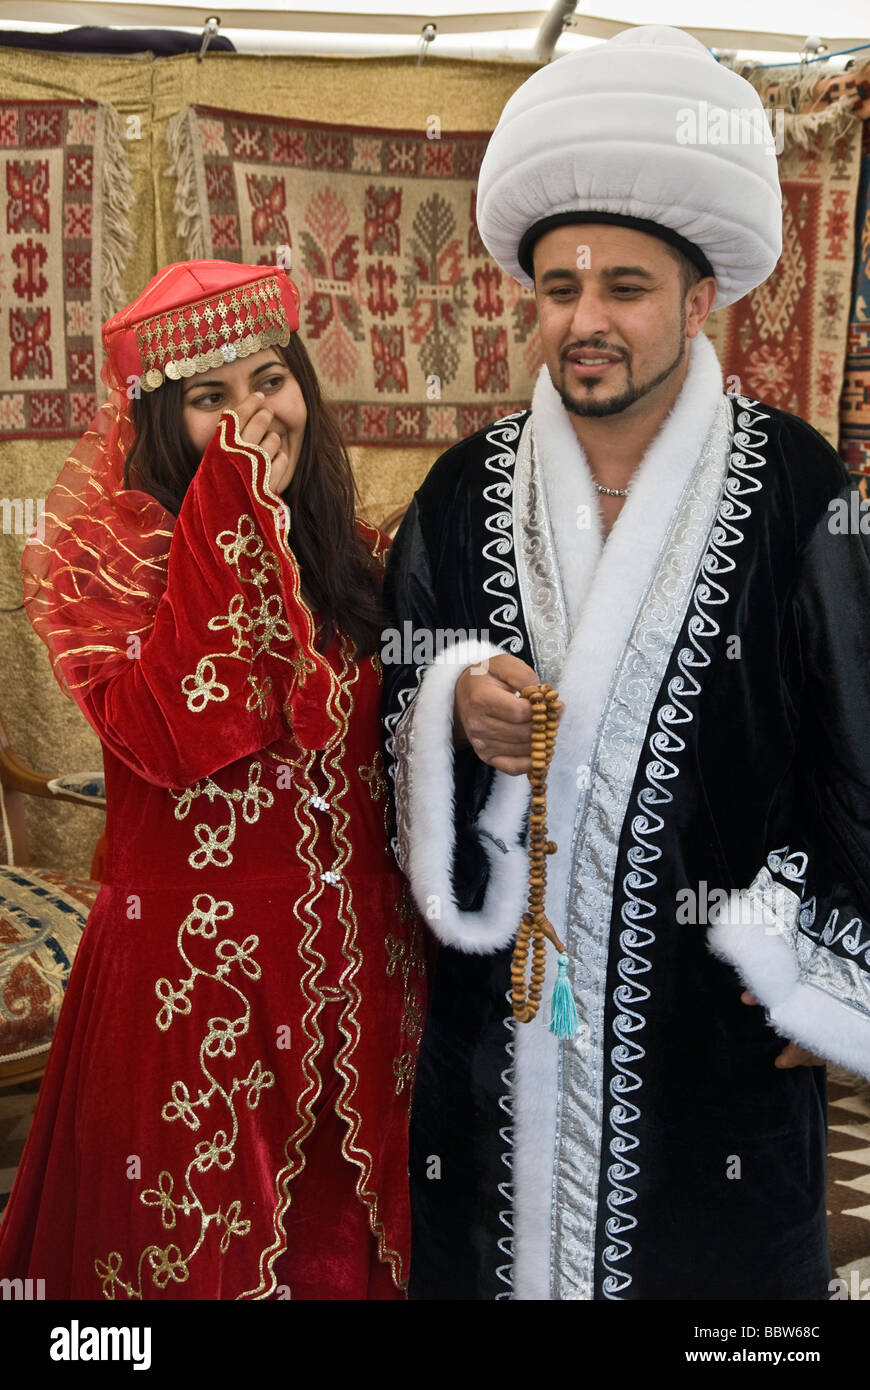 Young Turkish Couple Posing In Old Style Ottoman Turkish Outfit For